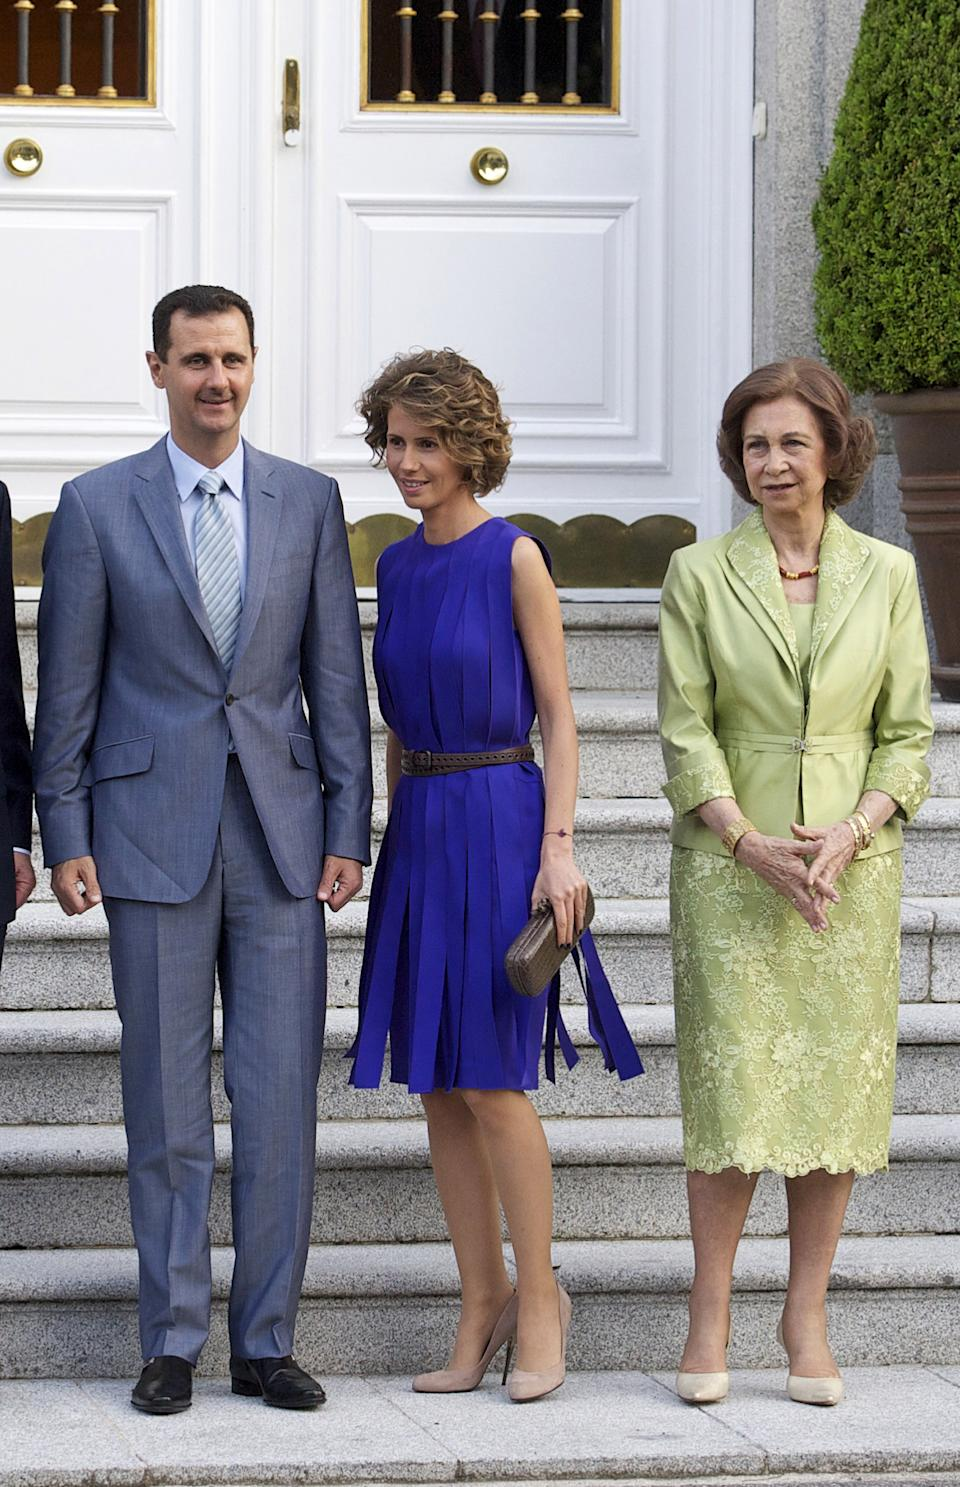 <p><b>Bashar al-Assad</b></p> <br><p>A former ophthalmologist student, Syrian President Bashar al-Assad made sure key relatives were put in prime government positions. The Guardian reports that Assad's realizable assets stand at $1.5 billion. If this figure includes assets within Syria, which Assad and his family control, the figure would be much larger at about $122 billion. His wealth is said to come from land, energy and licenses. Assad is known to hold his cards, money and positions tightly within his inner circle. </p>